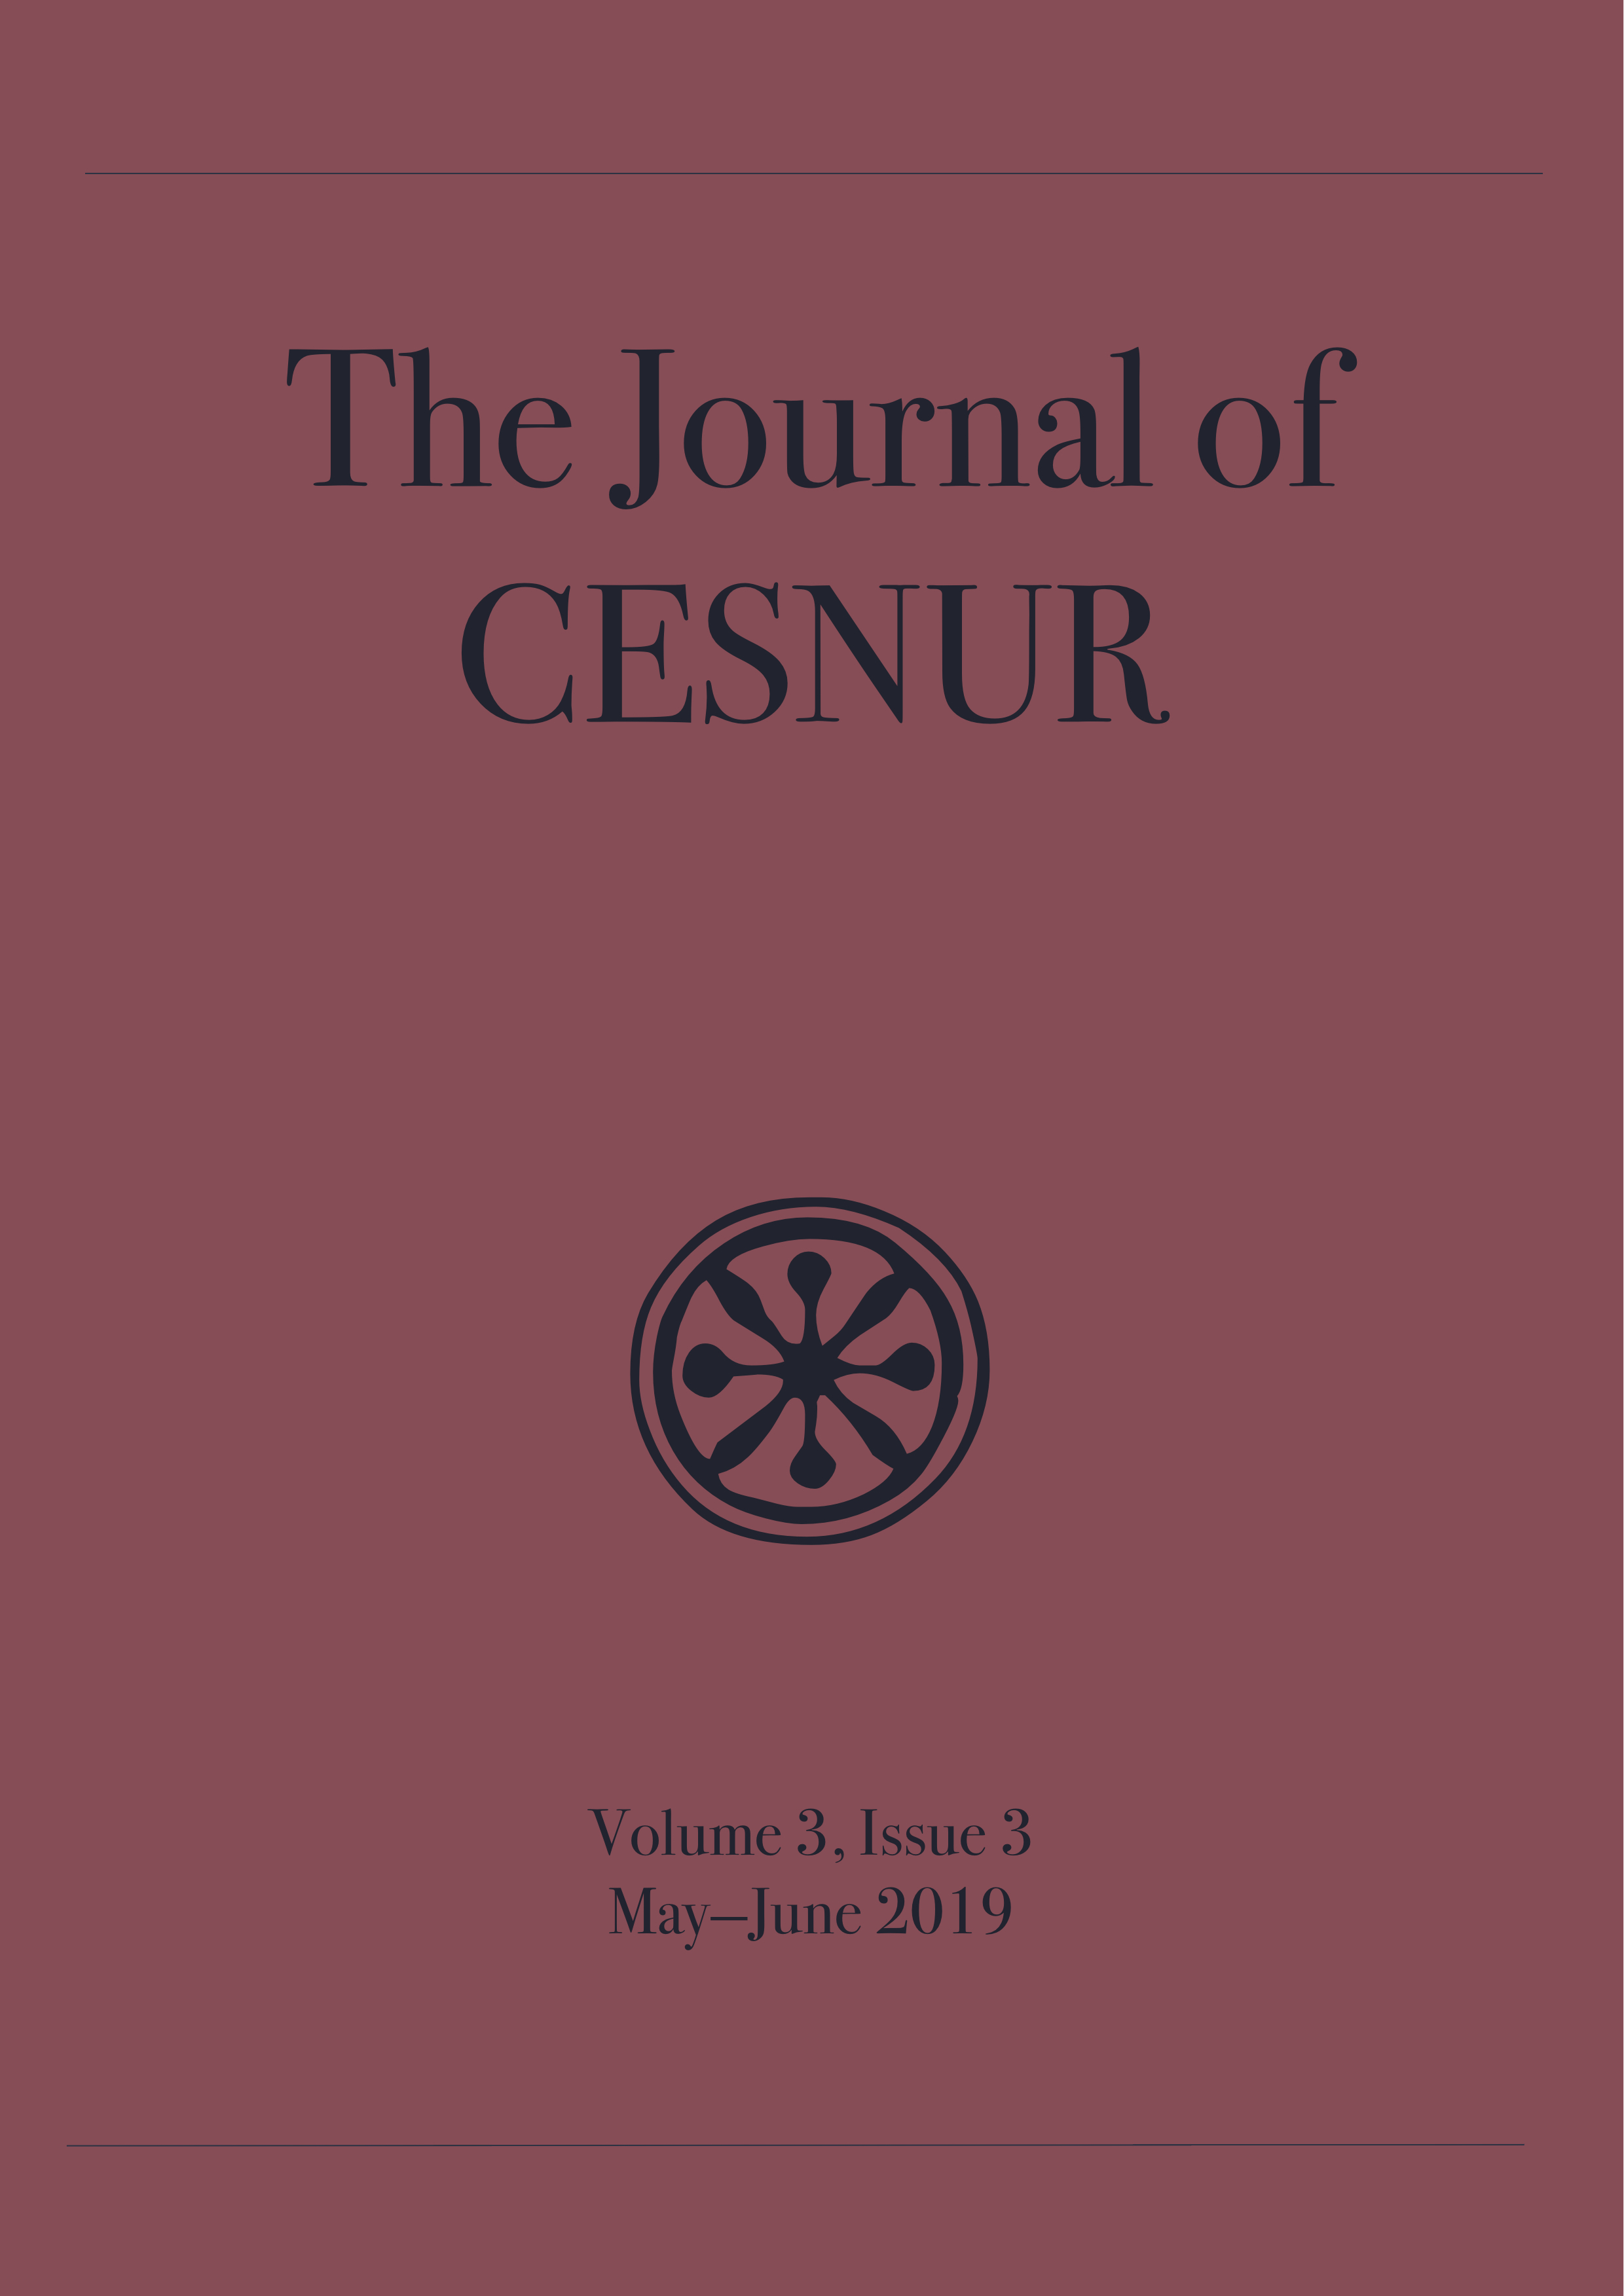 The Journal of Cesnur Volume 3 Issue 3 cover